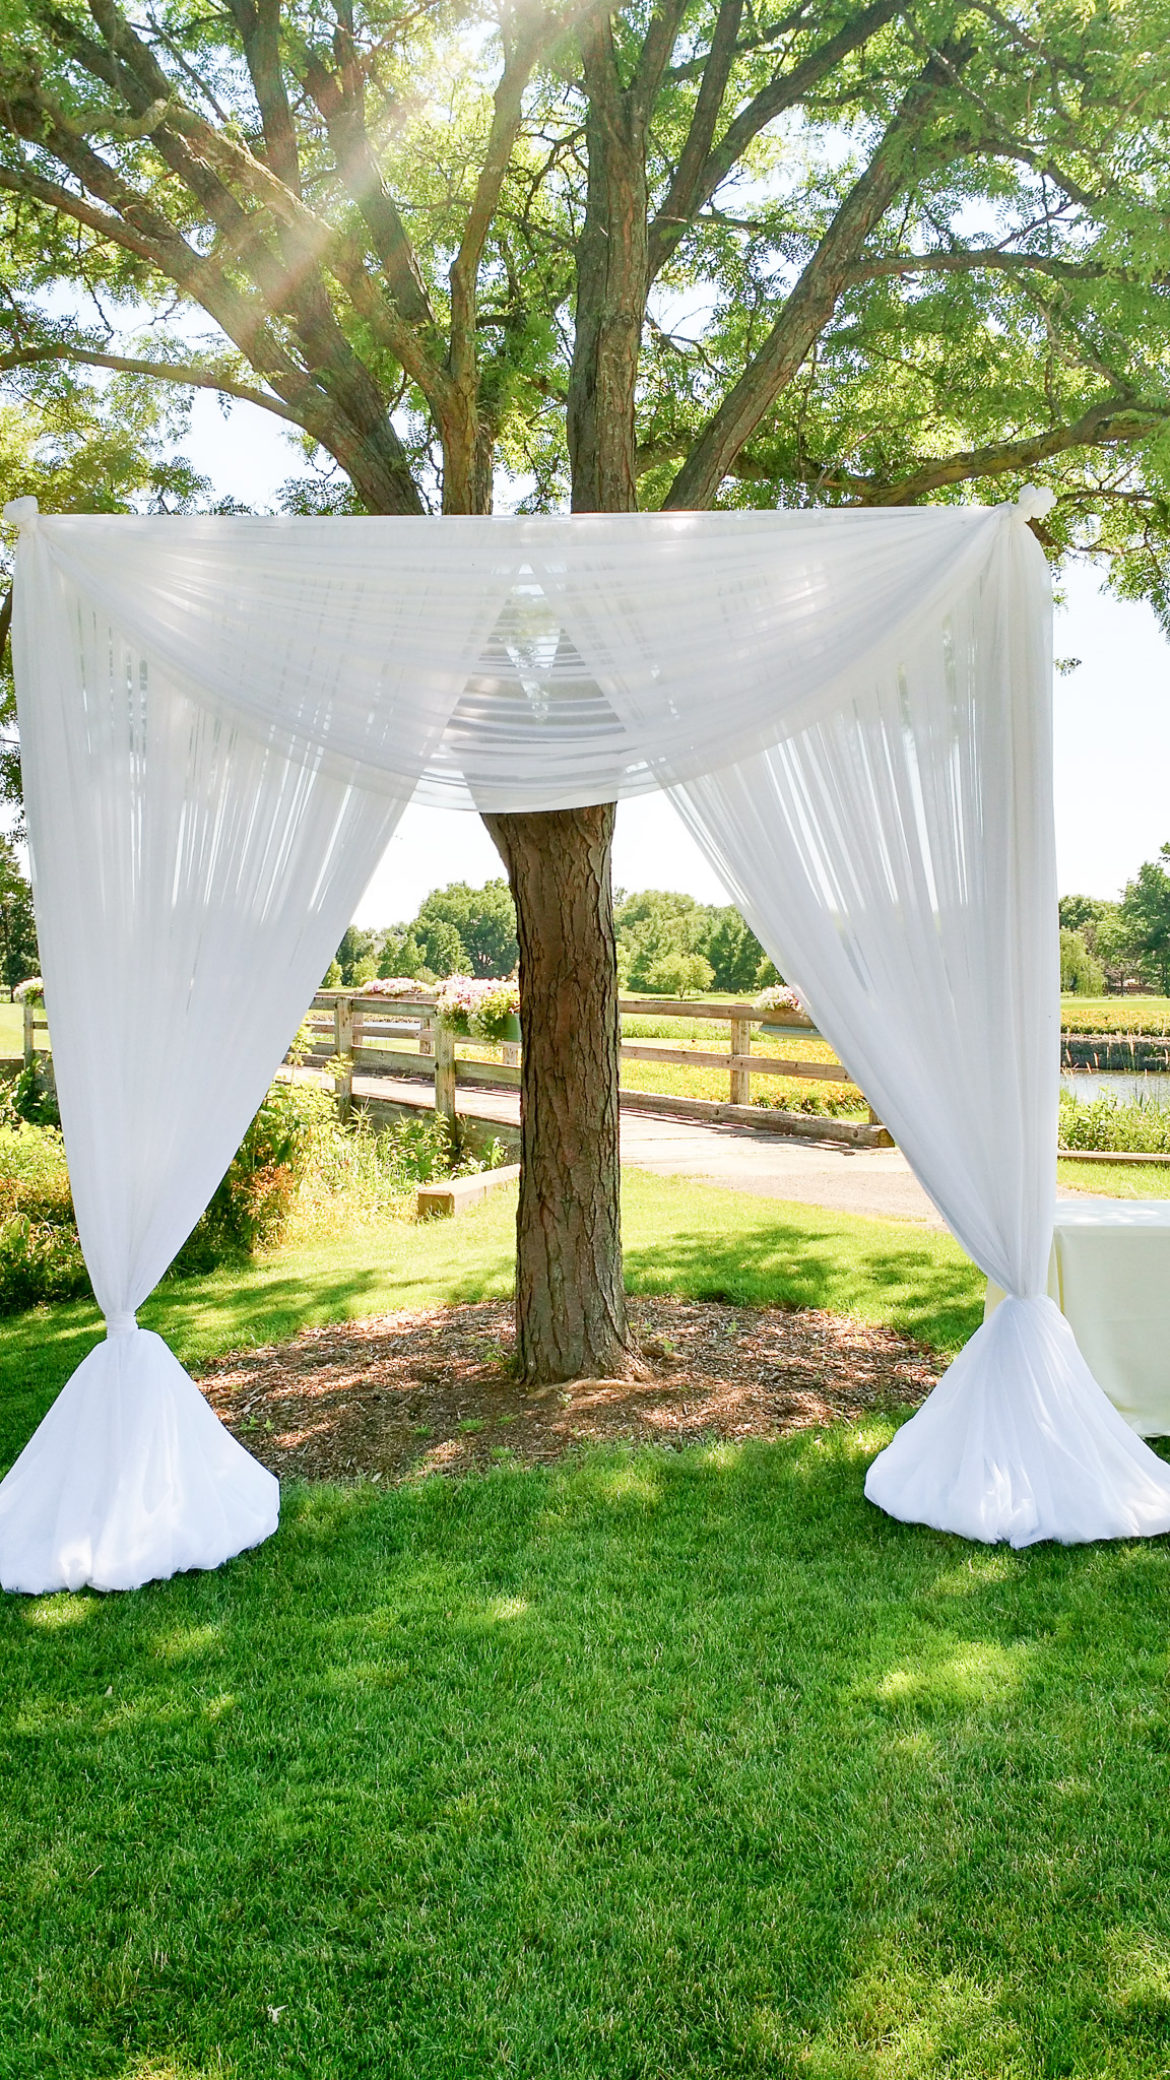 Elegant_Event_Lighting_Chicago_Seven_Bridges_Wedding_White_Bridal_Canopy_Arch_Draping_Outdoor_Ceremony